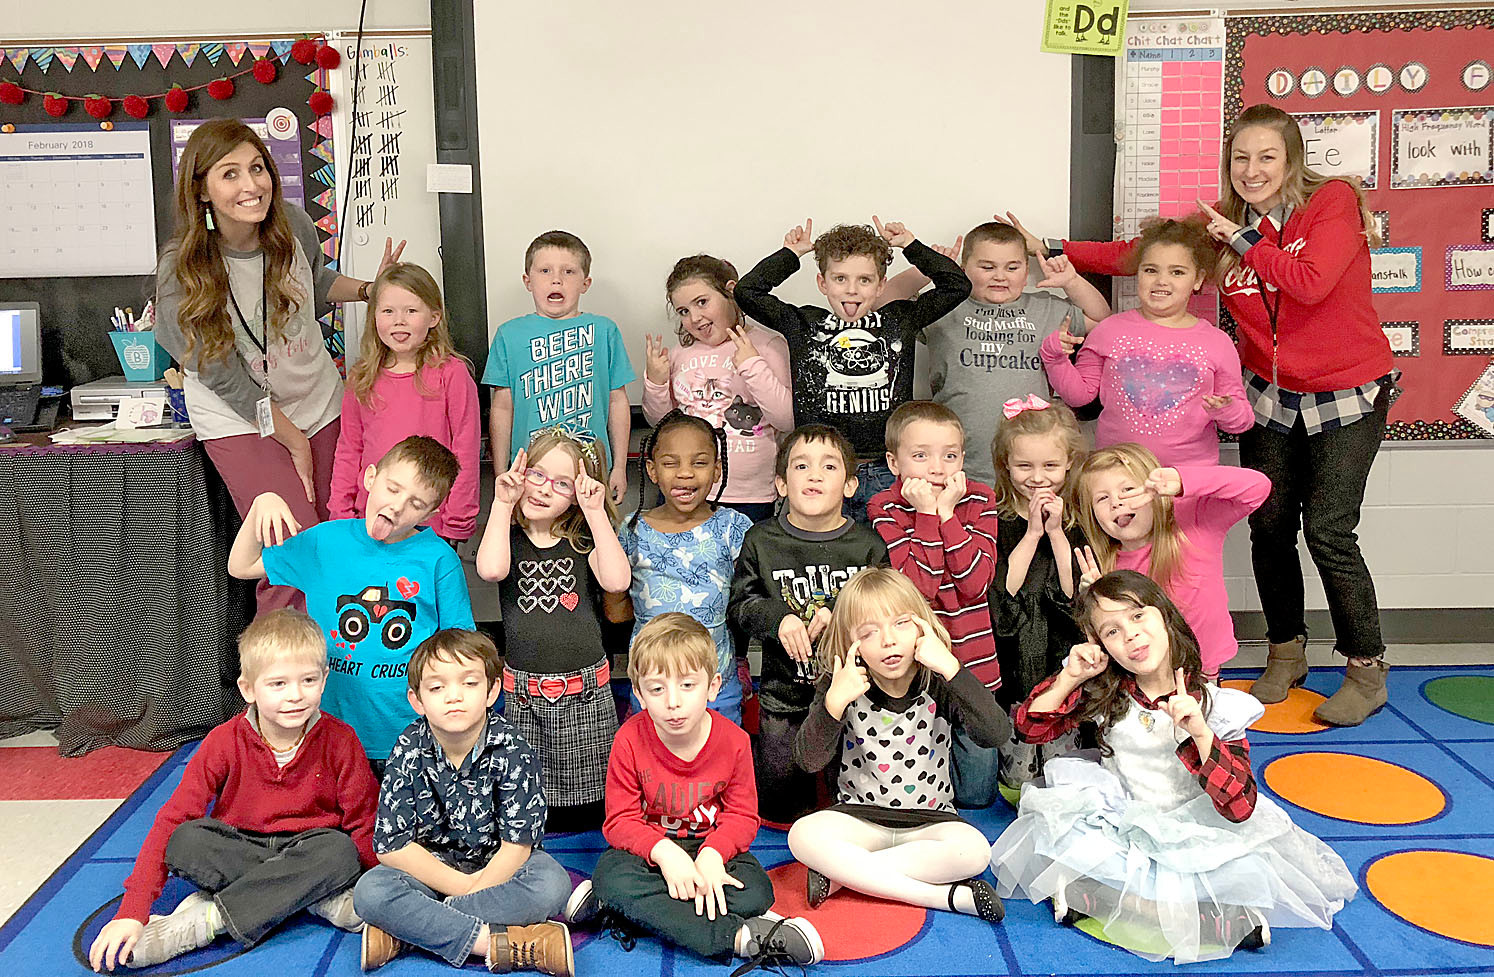 Kindergarten students at Waterville Community Elementary School turned Valentine's Day into an opportunity to learn about friendship. Students had to complete a scavenger hunt to find friends who had something in common with them (right photo). At left, Mrs. Bacon's class clowns around for the camera, but in a friendly way. Students were treated to a Friendship Ice Cream Party where they could celebrate their friendships, new and old, according to instructional coach Amanda McDonald. 